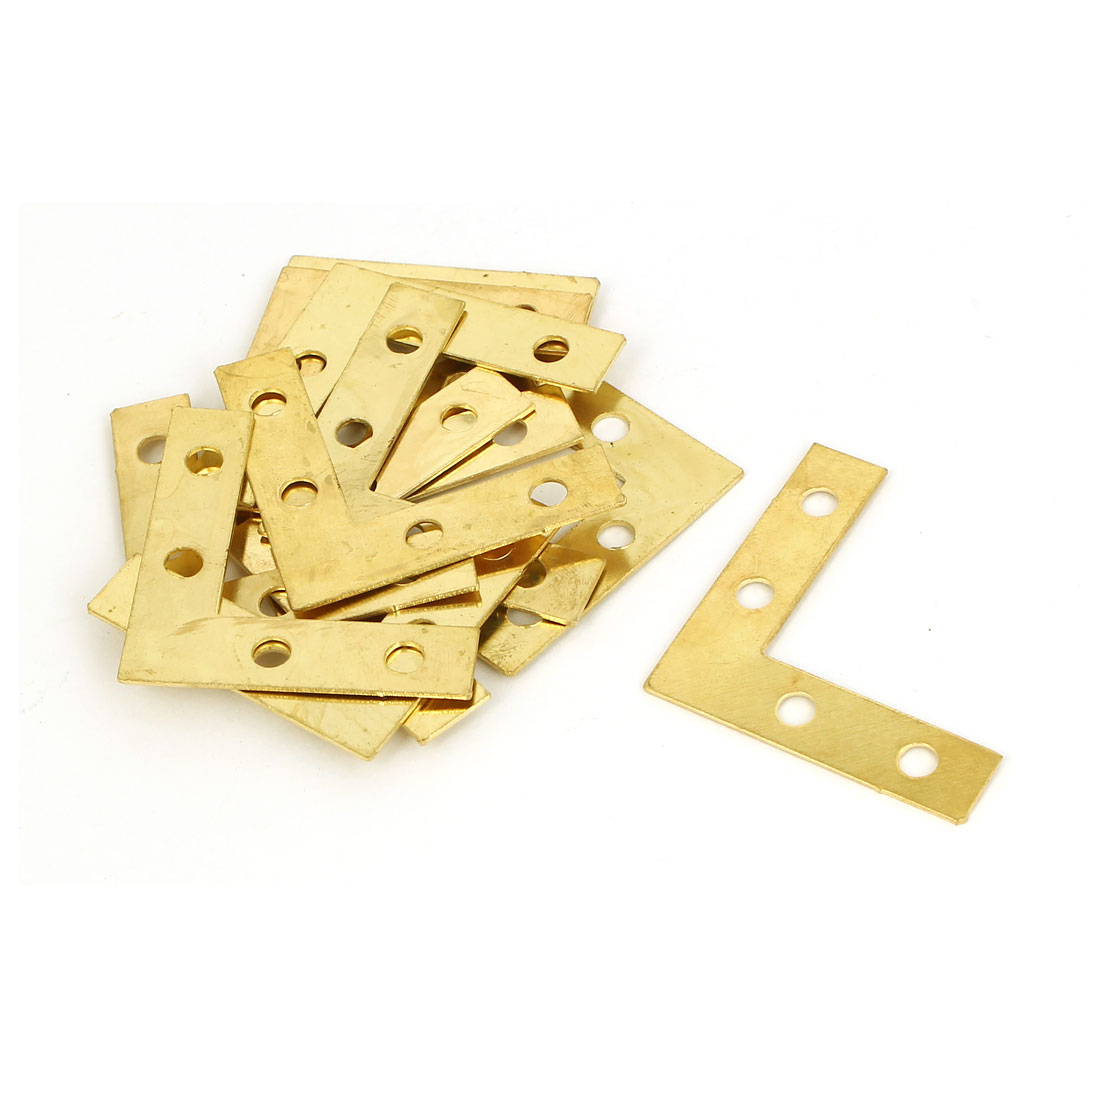 38mm x 38mm Angle Brackets Joining Fixing Flat L Shape Repair Plates 12PCS